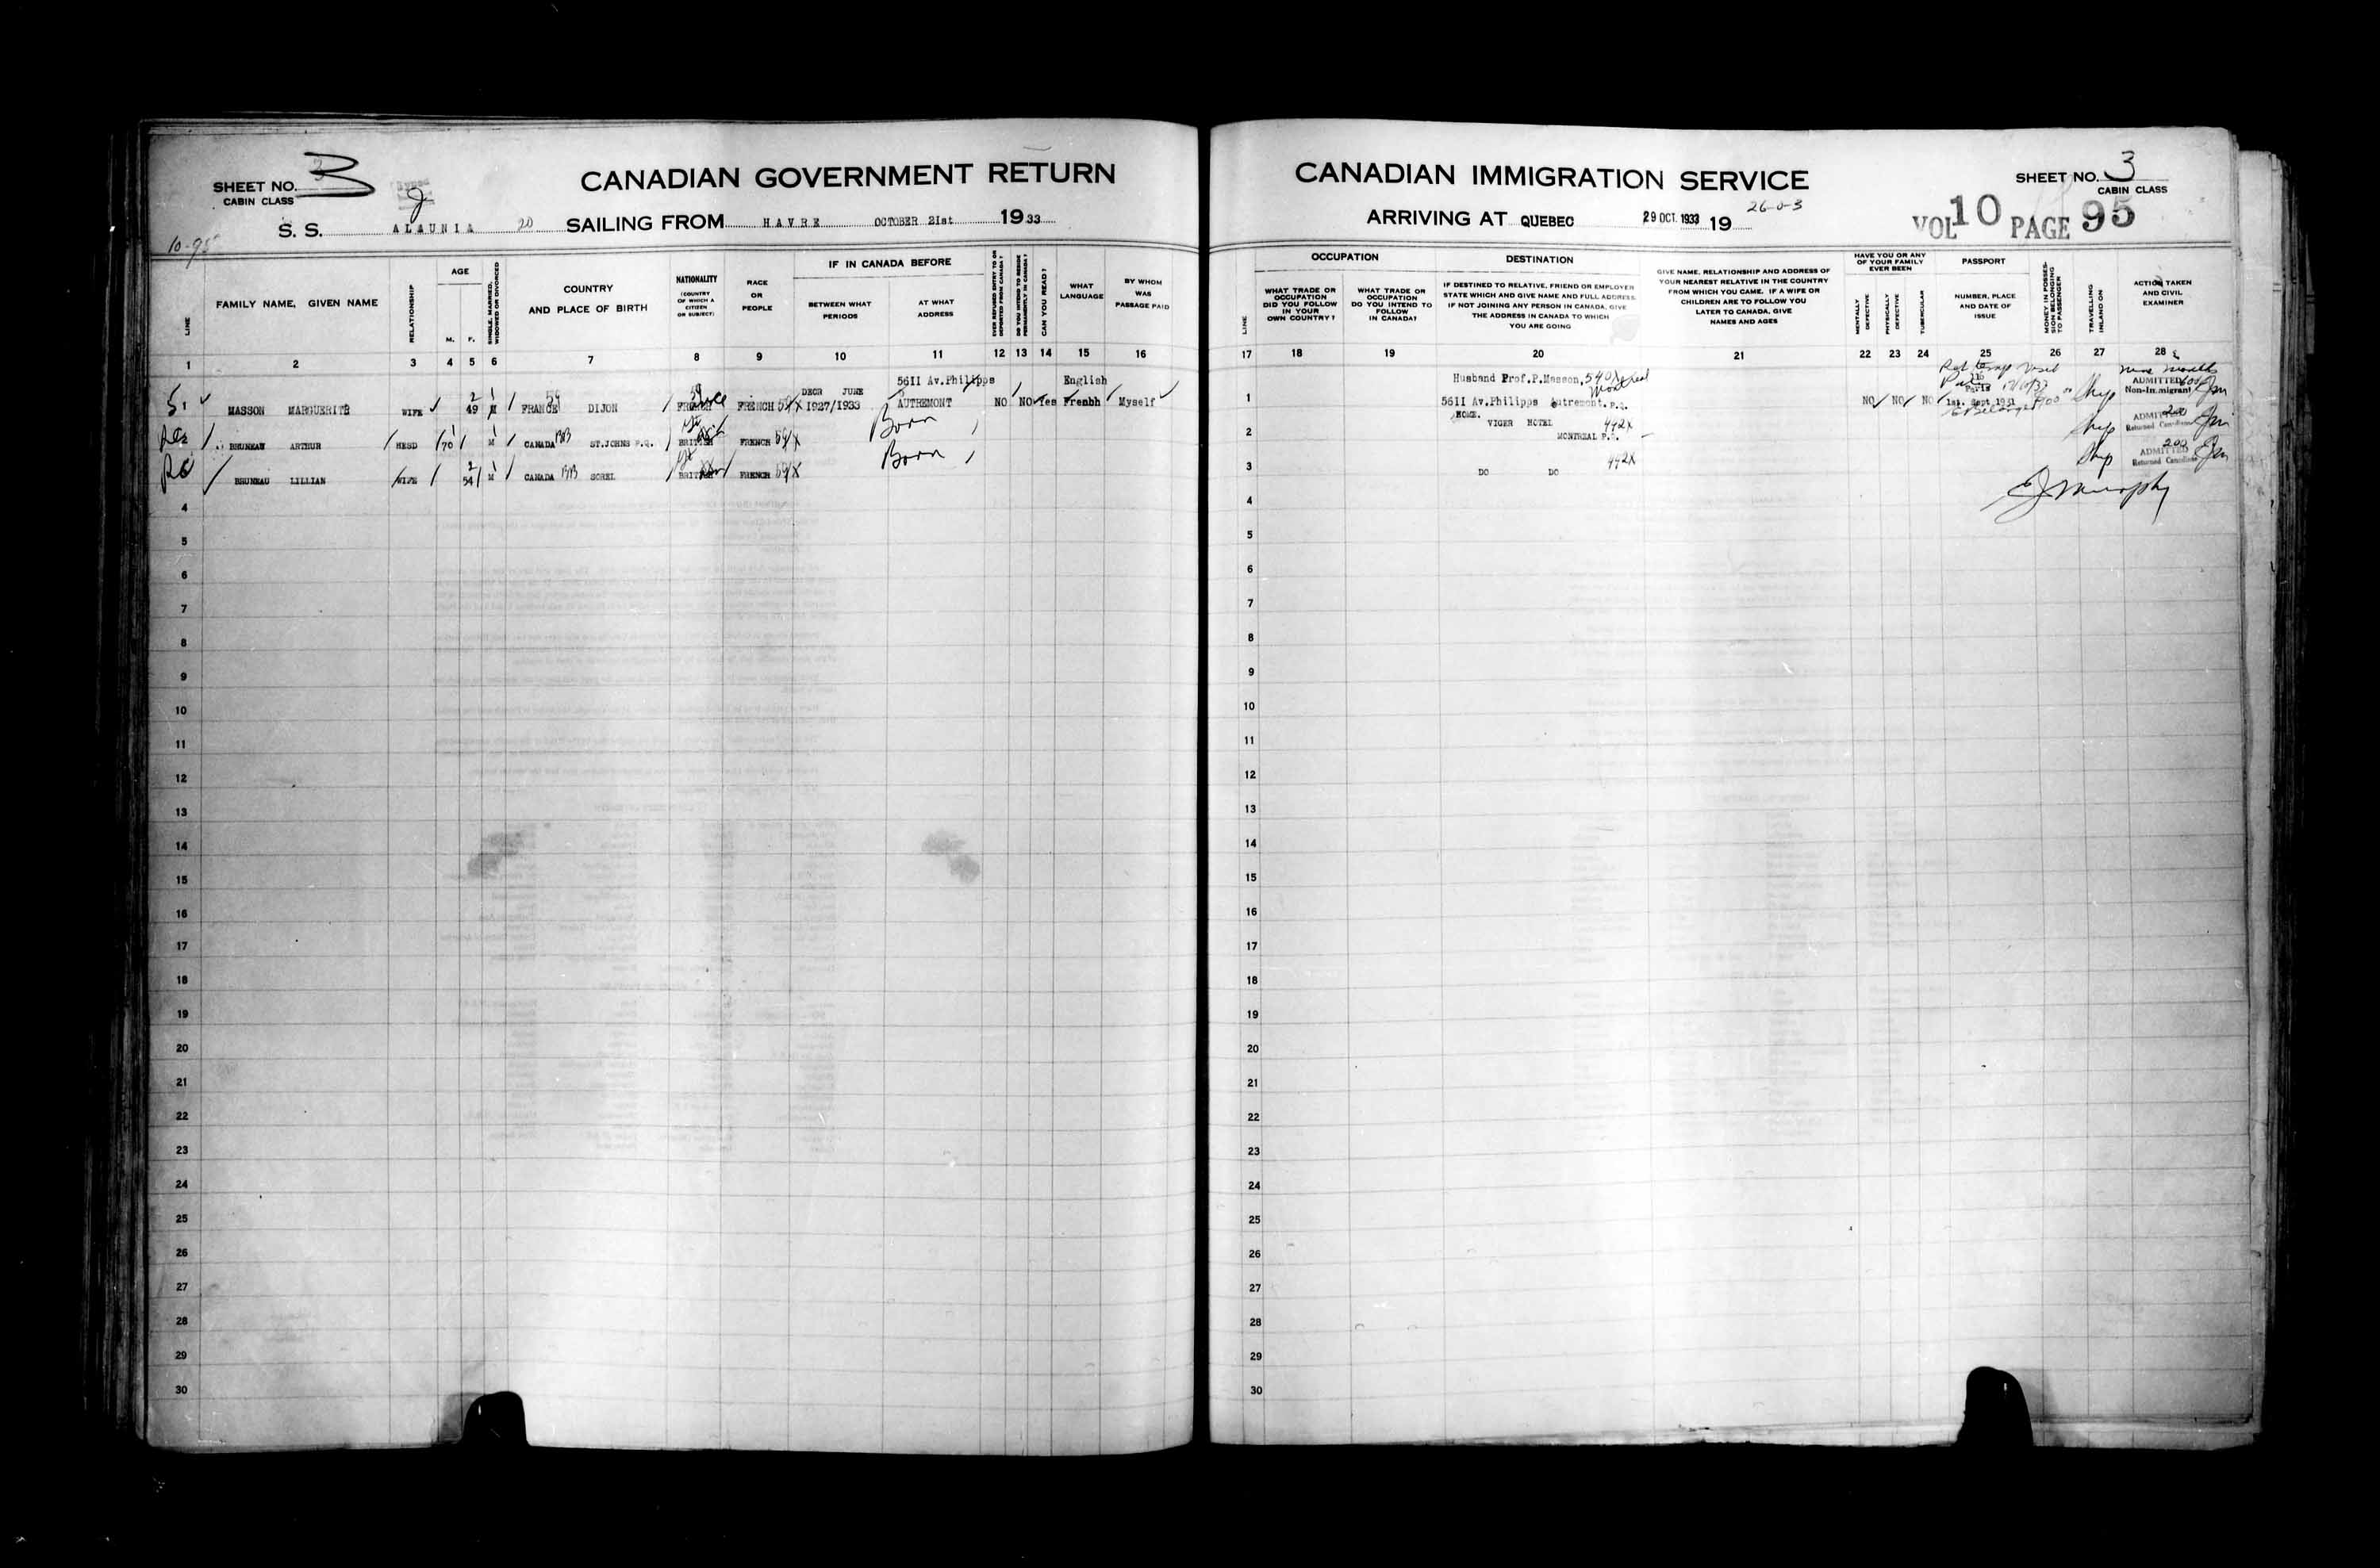 Title: Passenger Lists: Quebec City (1925-1935) - Mikan Number: 134839 - Microform: t-14785